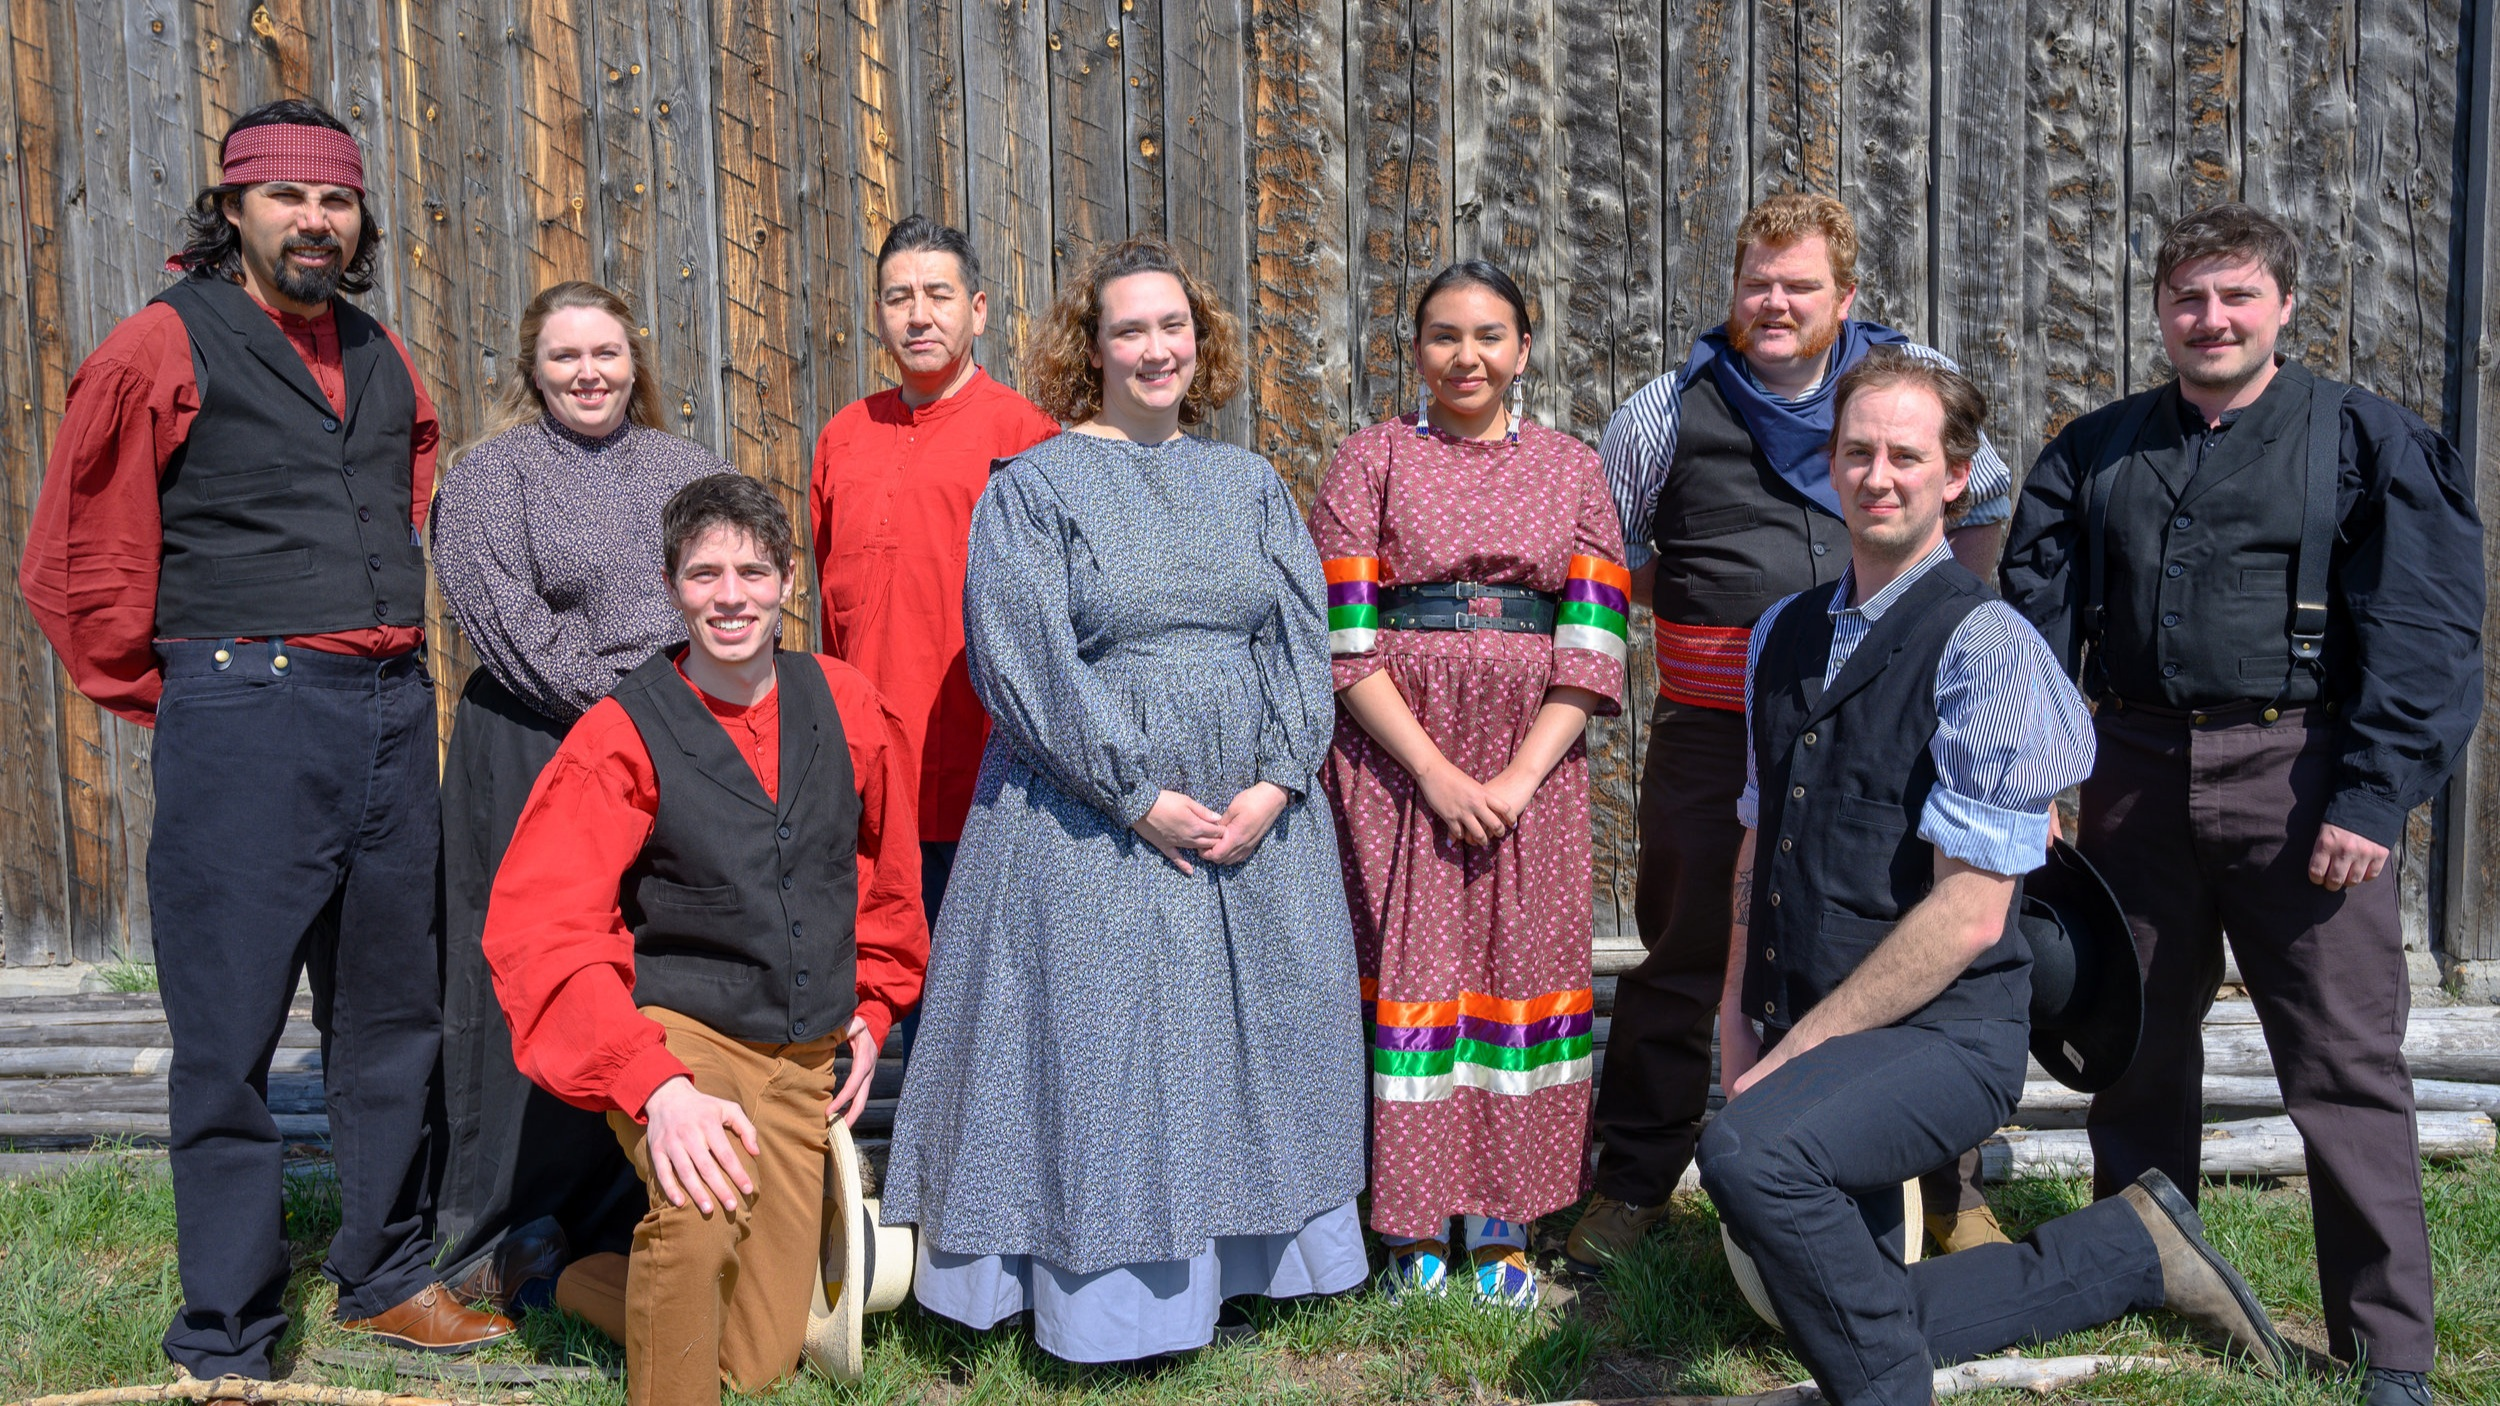 A Photo of the staff at Fort Whoop-Up for the 2019 season. Michael McDougall-Price, Katelyn Heidinger, Aaron Lorenz, Harrison Red Crow, Natasha Gray, Raven Limpy, Troy Bannerman, Kieran Swayn, and Billy Hurtubise    .